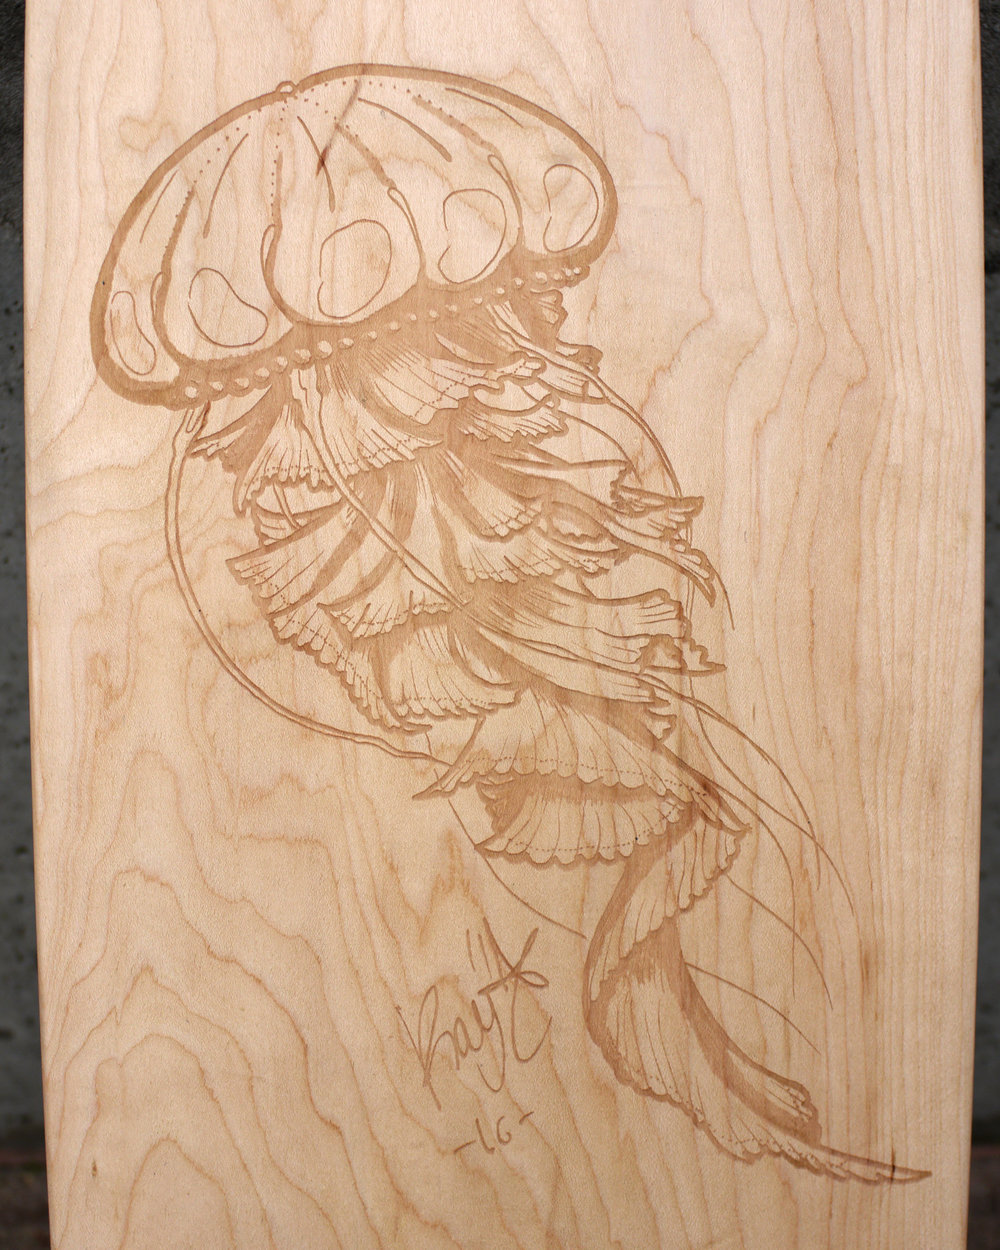 laser engraved skateboard